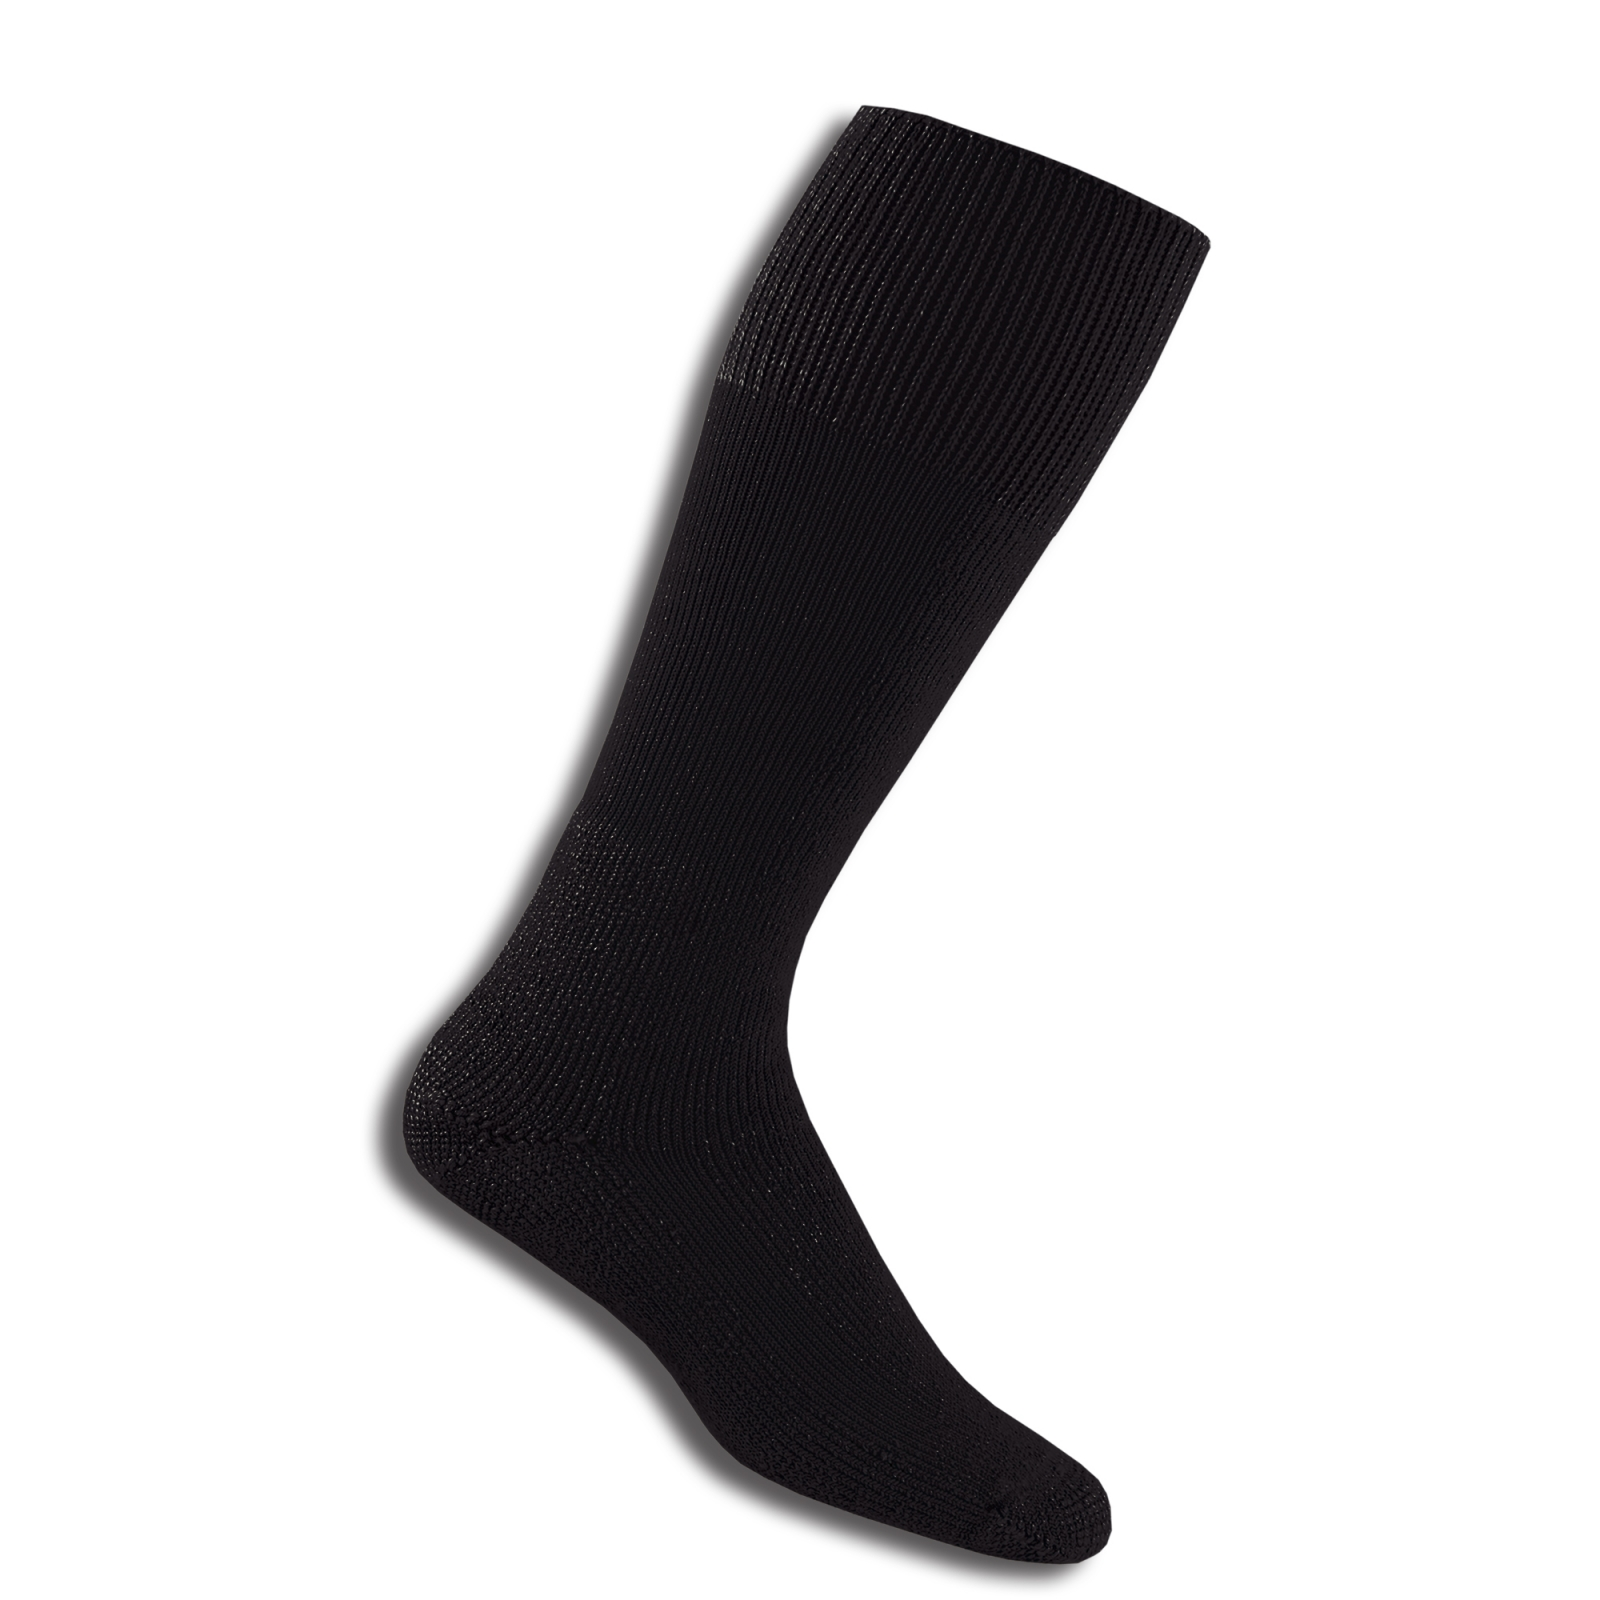 19a1e2994dba0 Thorlos Military Combat Boot Socks - Alton Sports